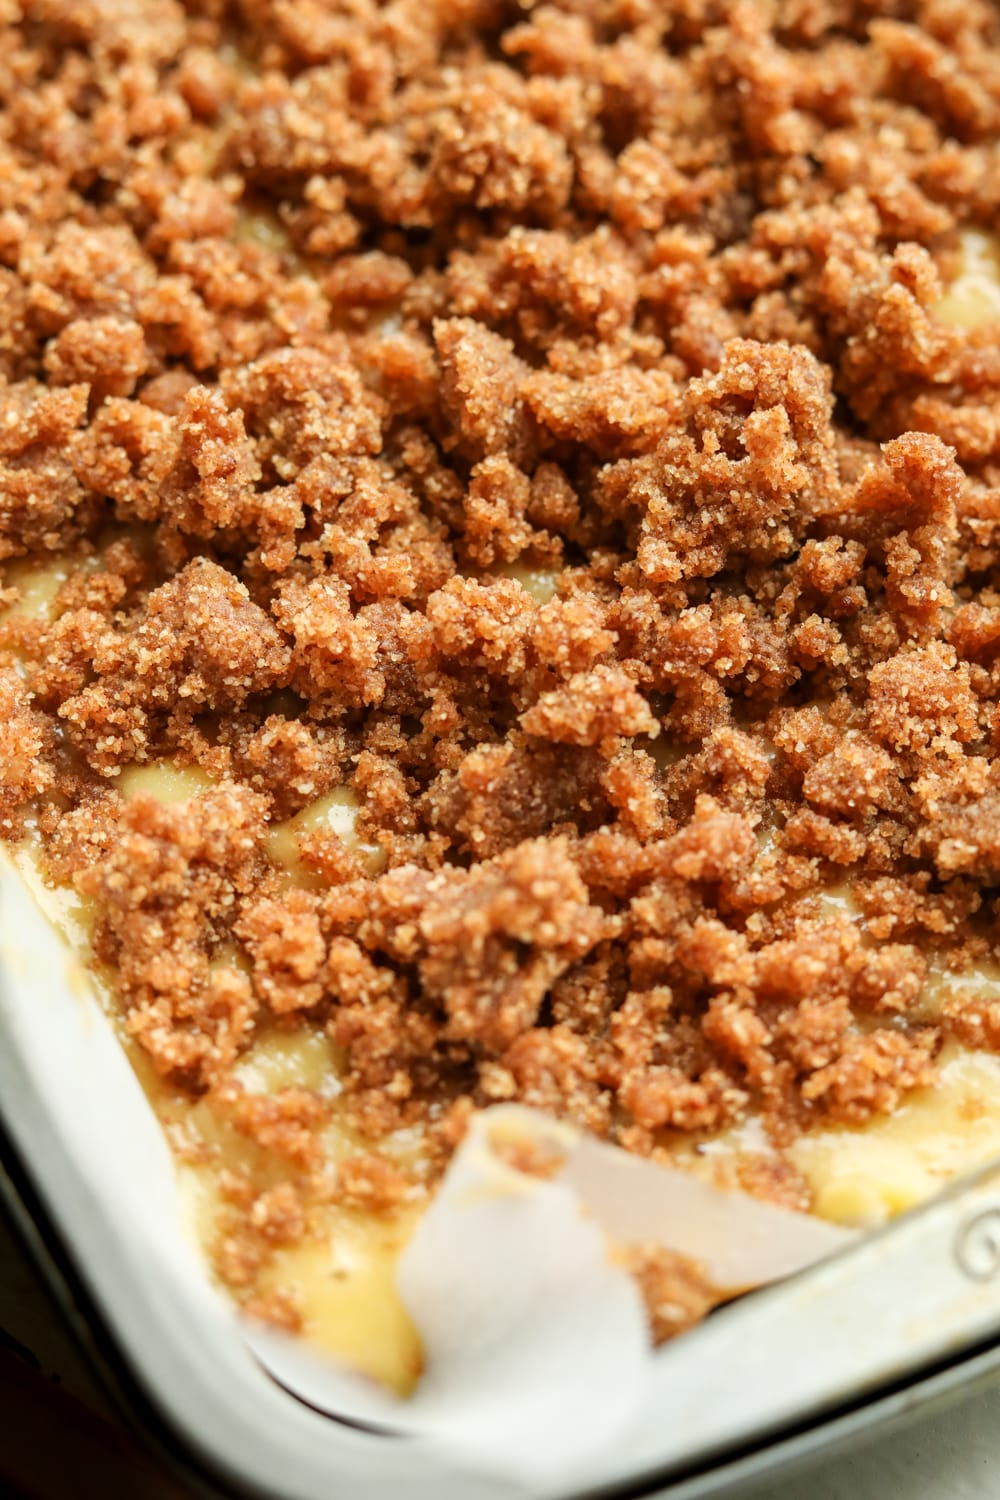 A cake tray filled with cake batter and a cinnamon crumble topping.